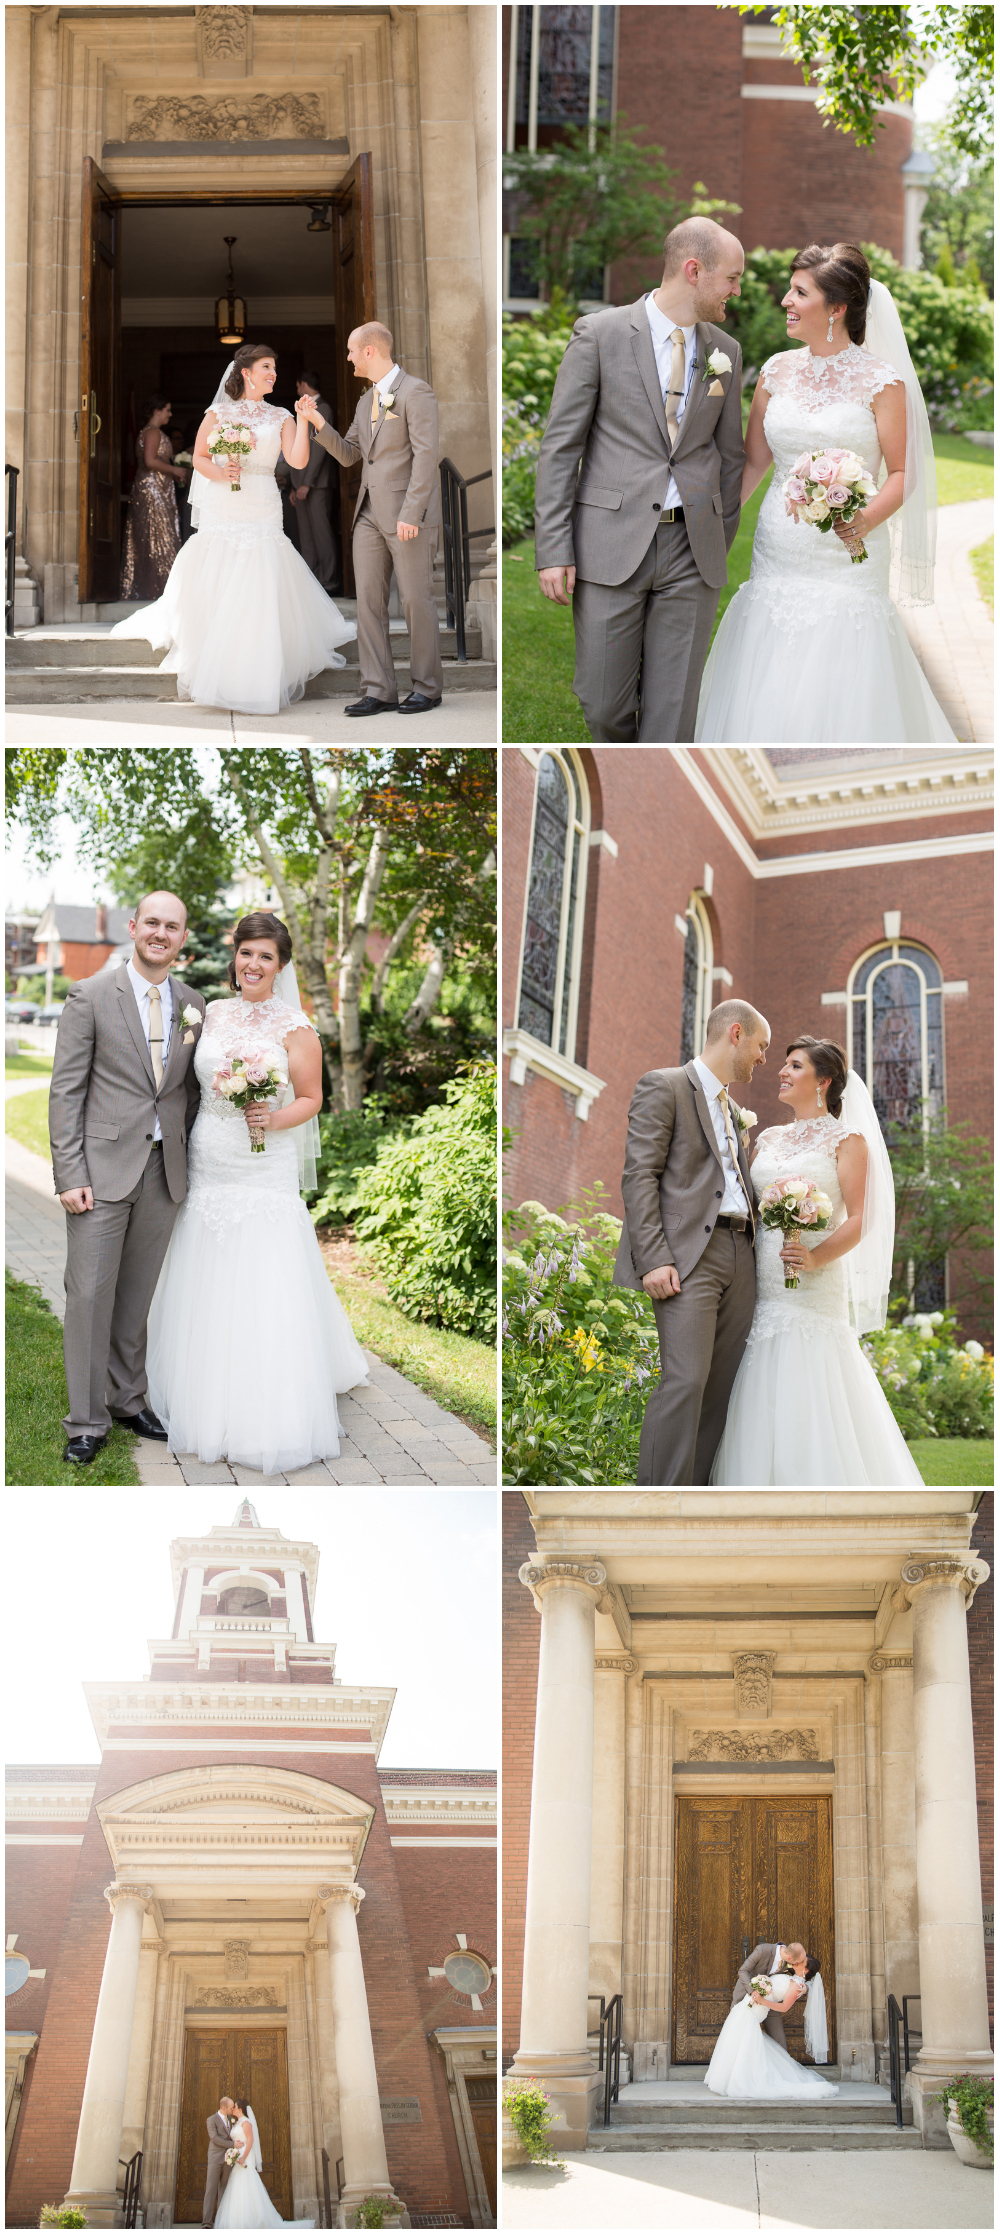 Liuna_Station_Hamilton_Wedding_Photo_JJMedia-9